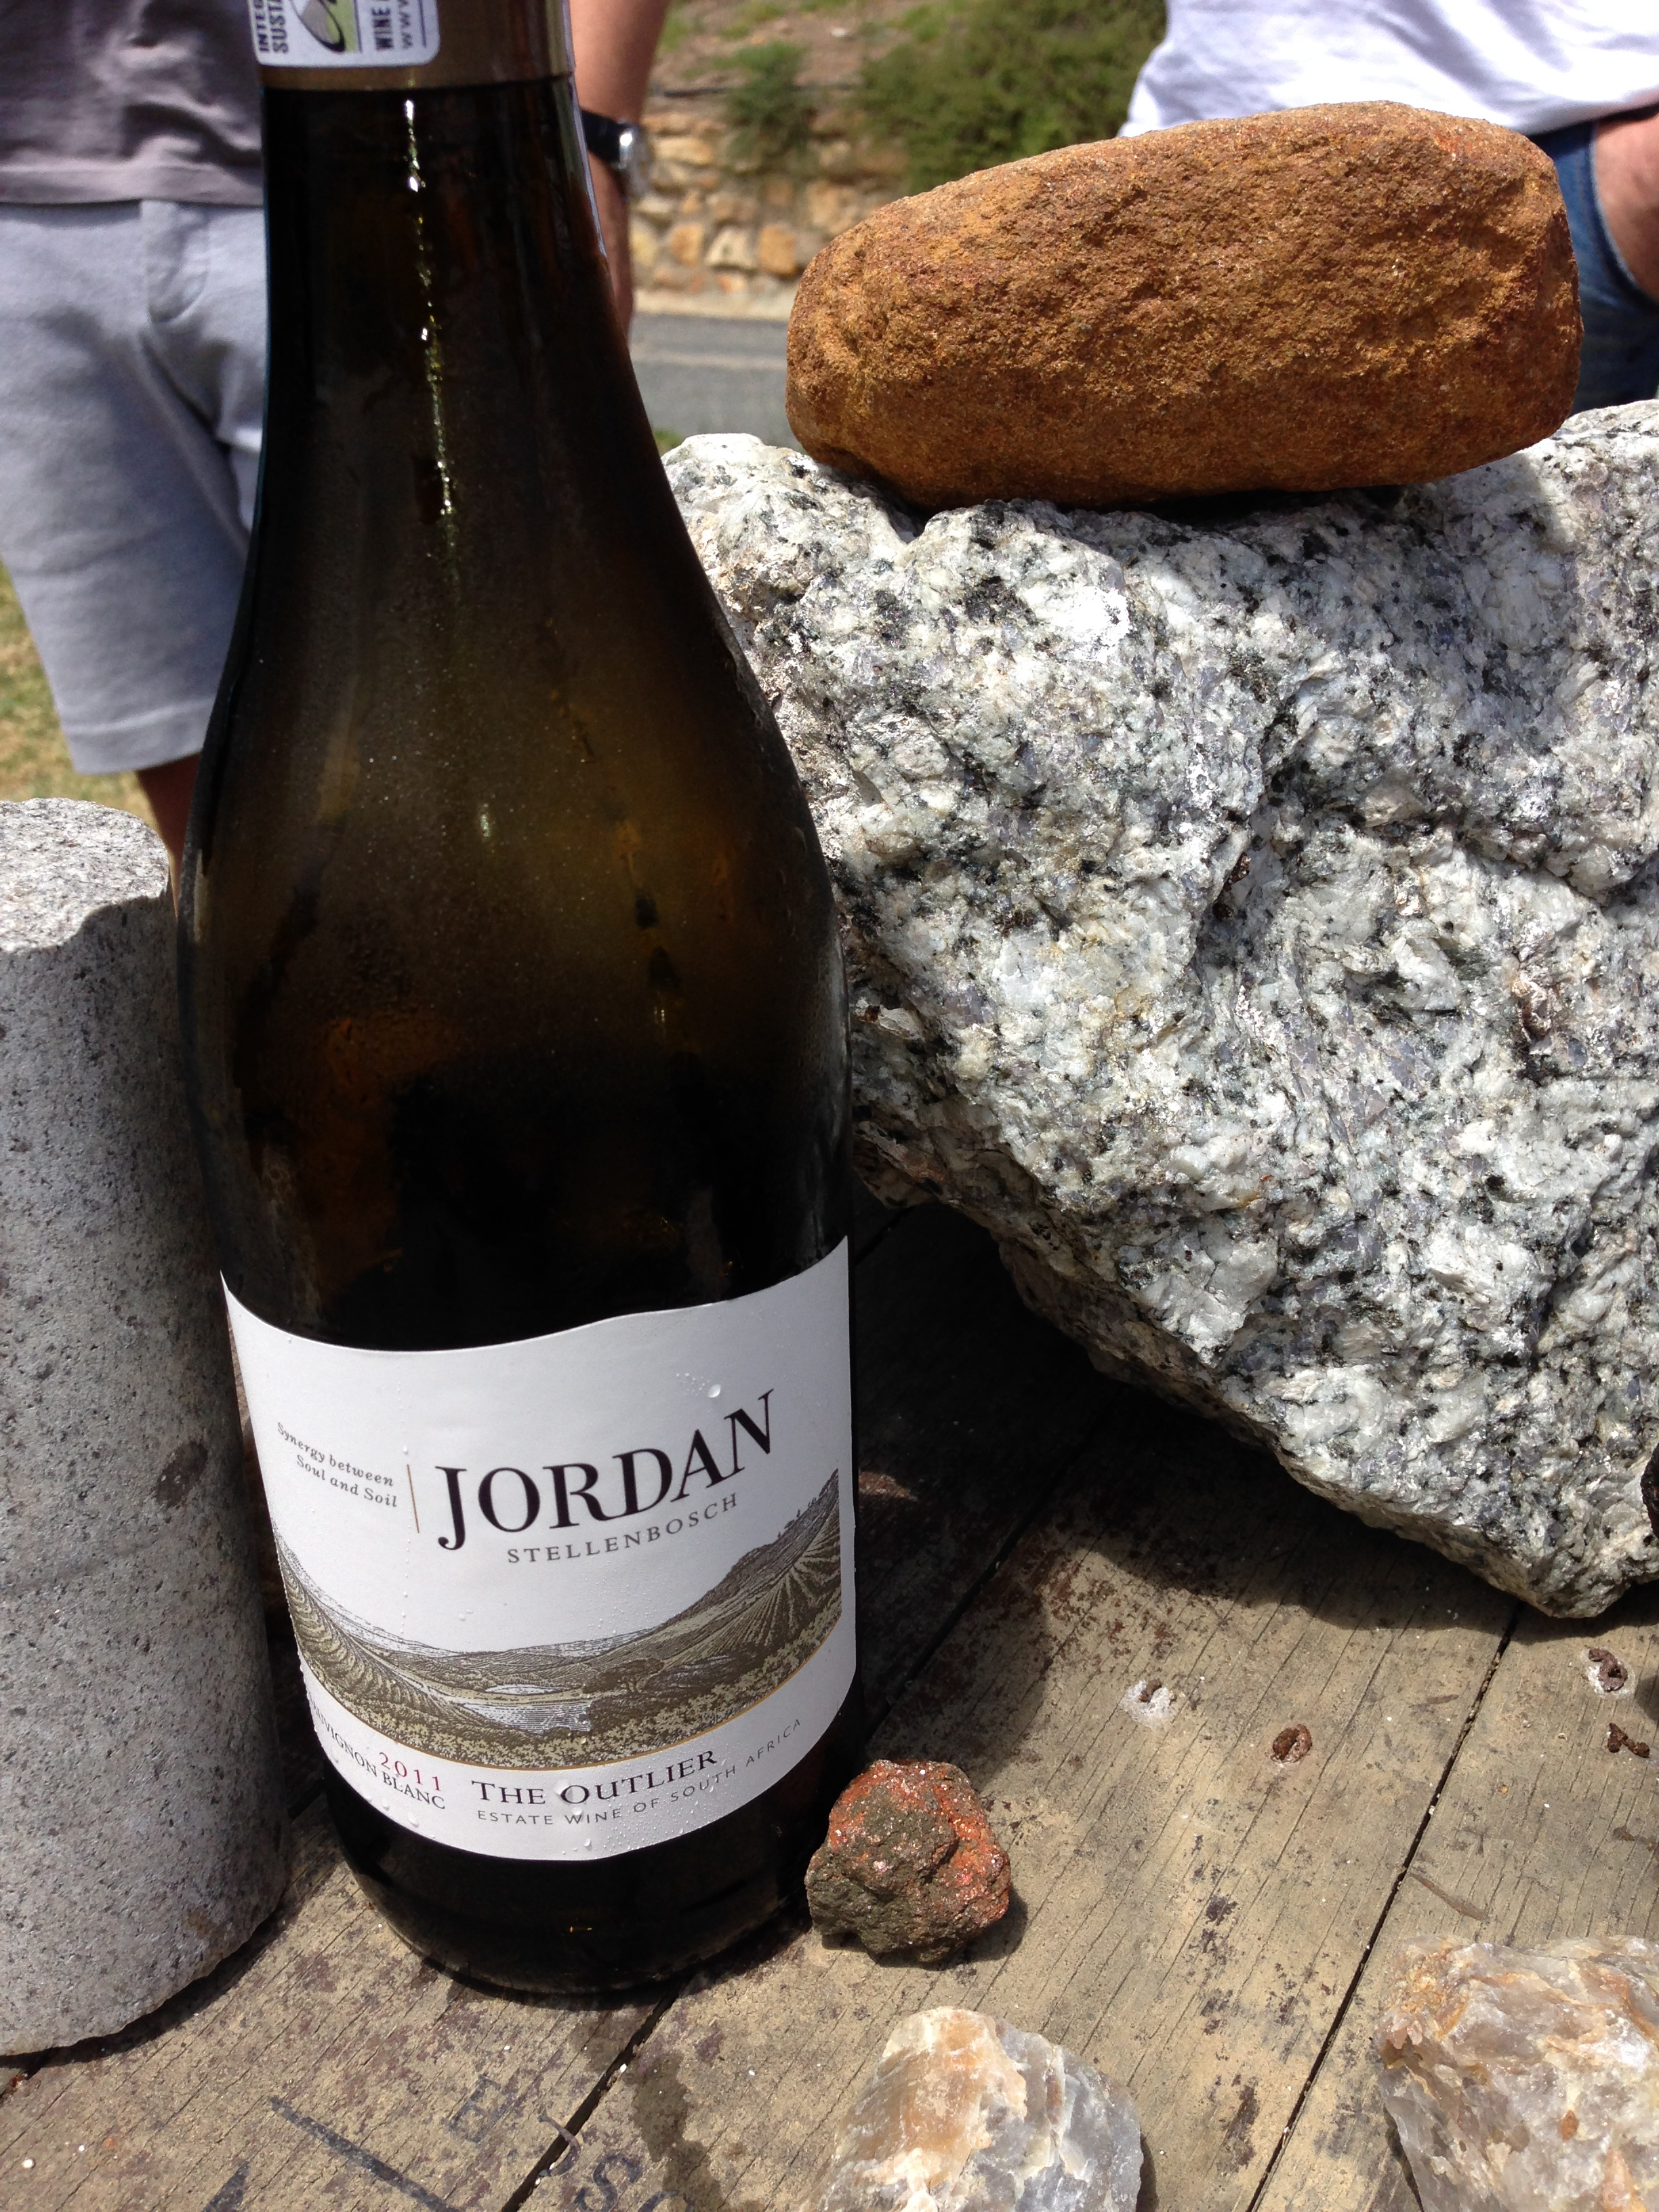 Jordan Wine - planned around the rocks!